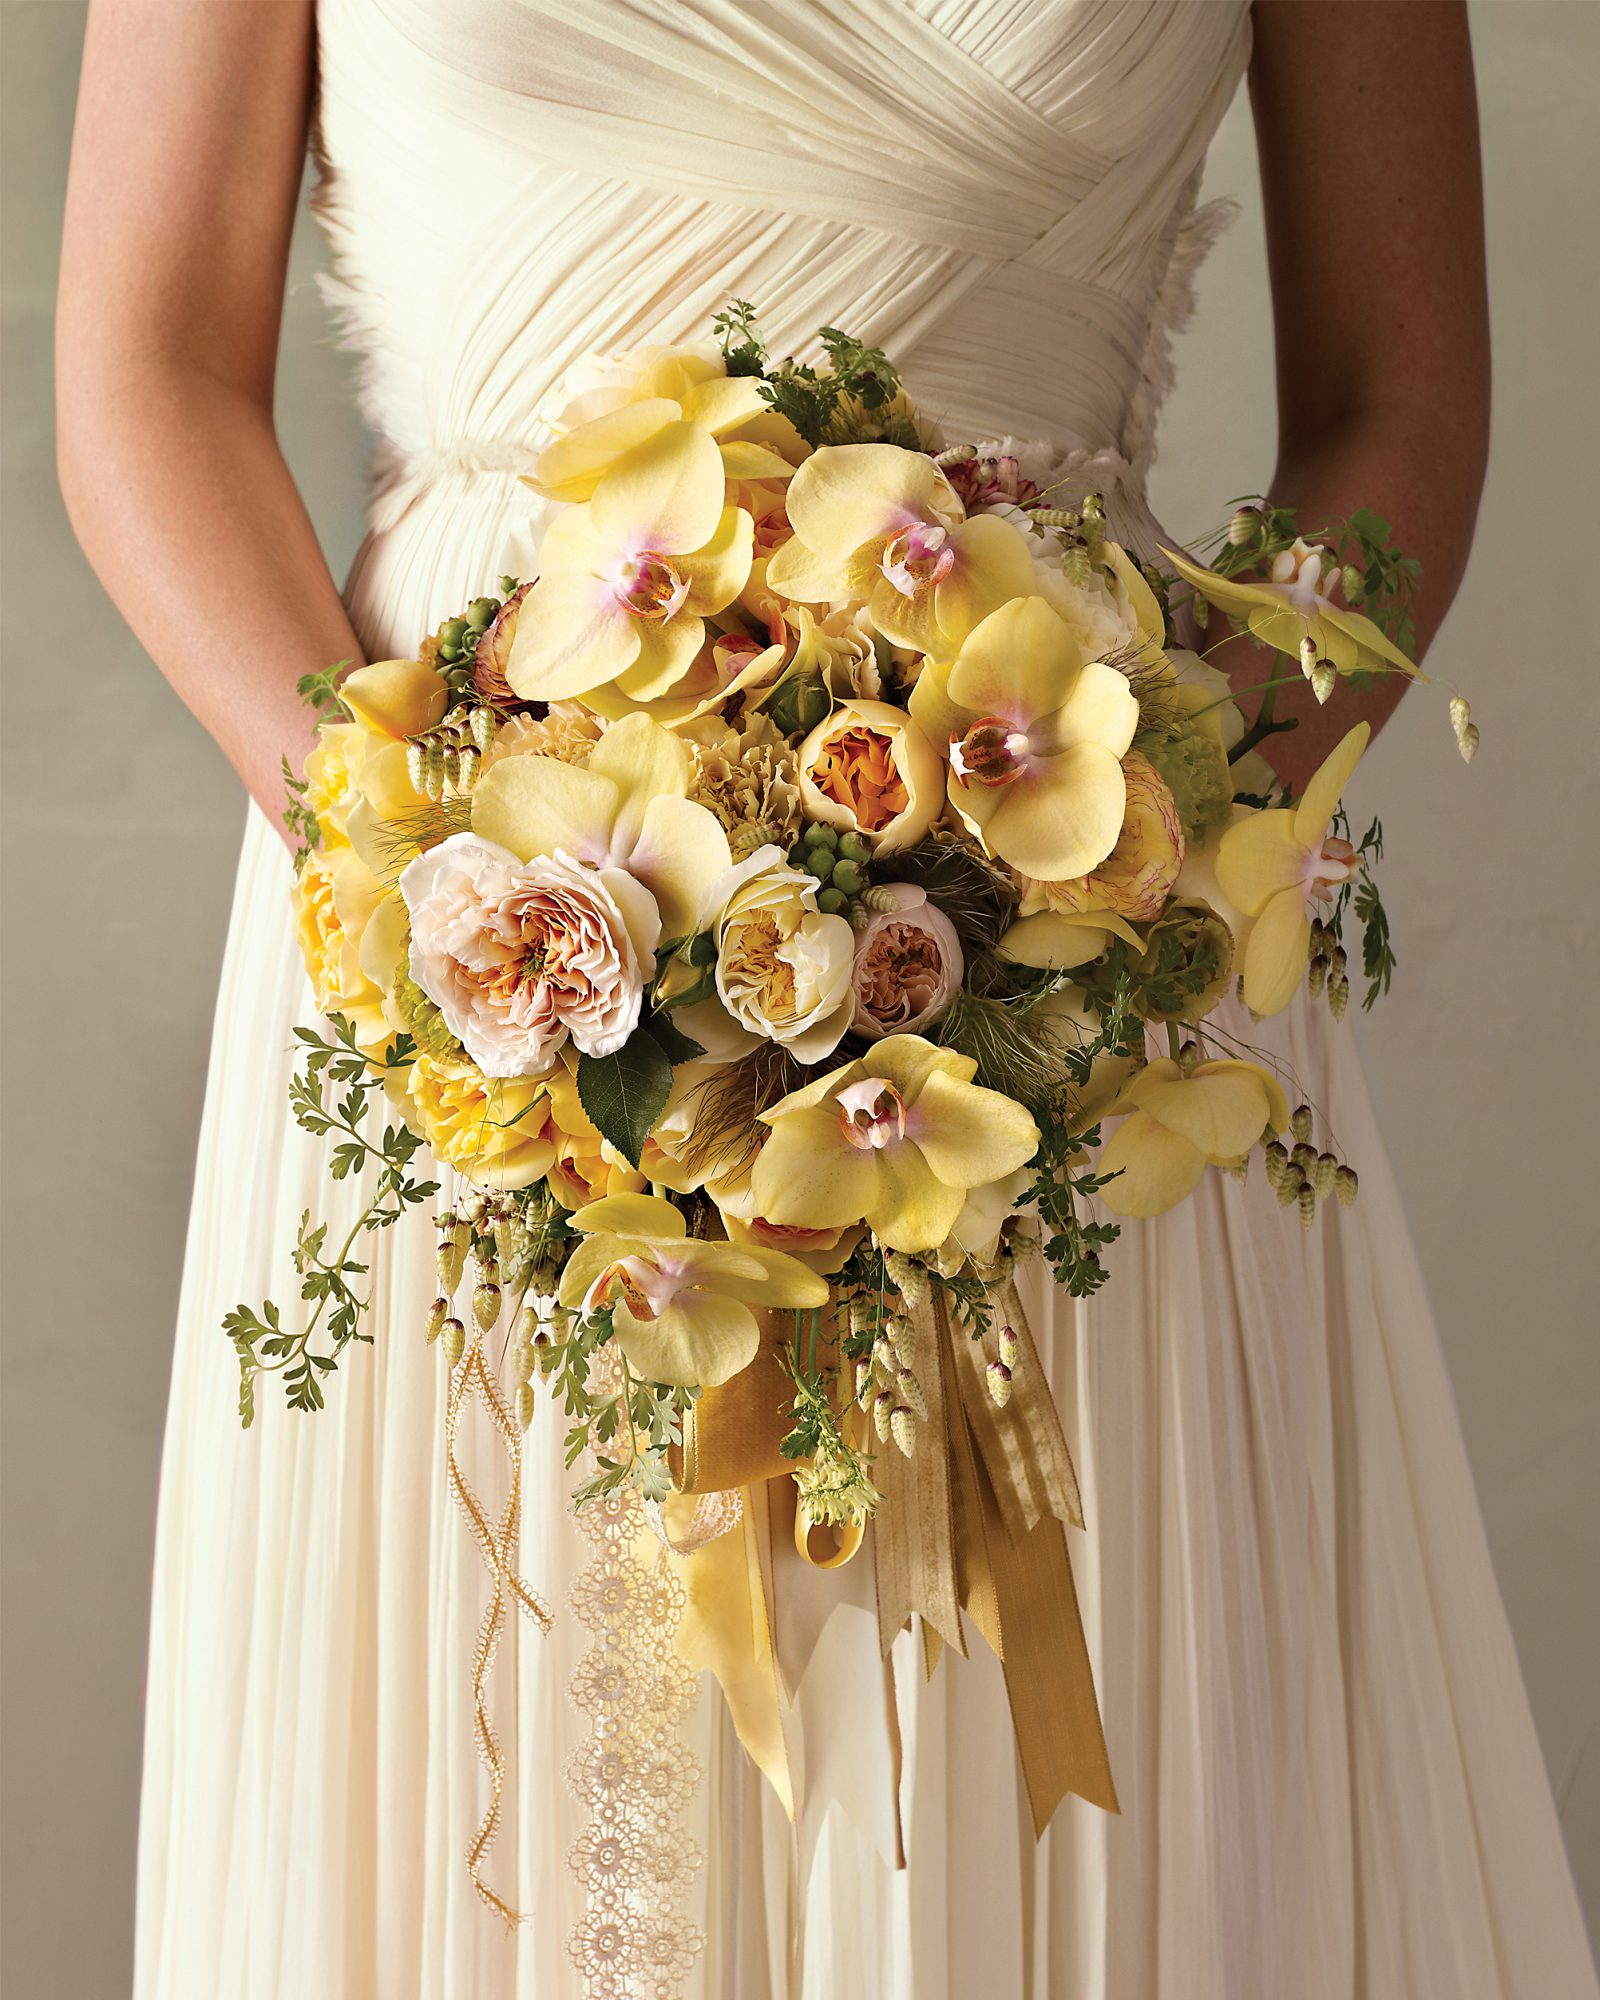 bridal-bouquet-0811mwd107479.jpg